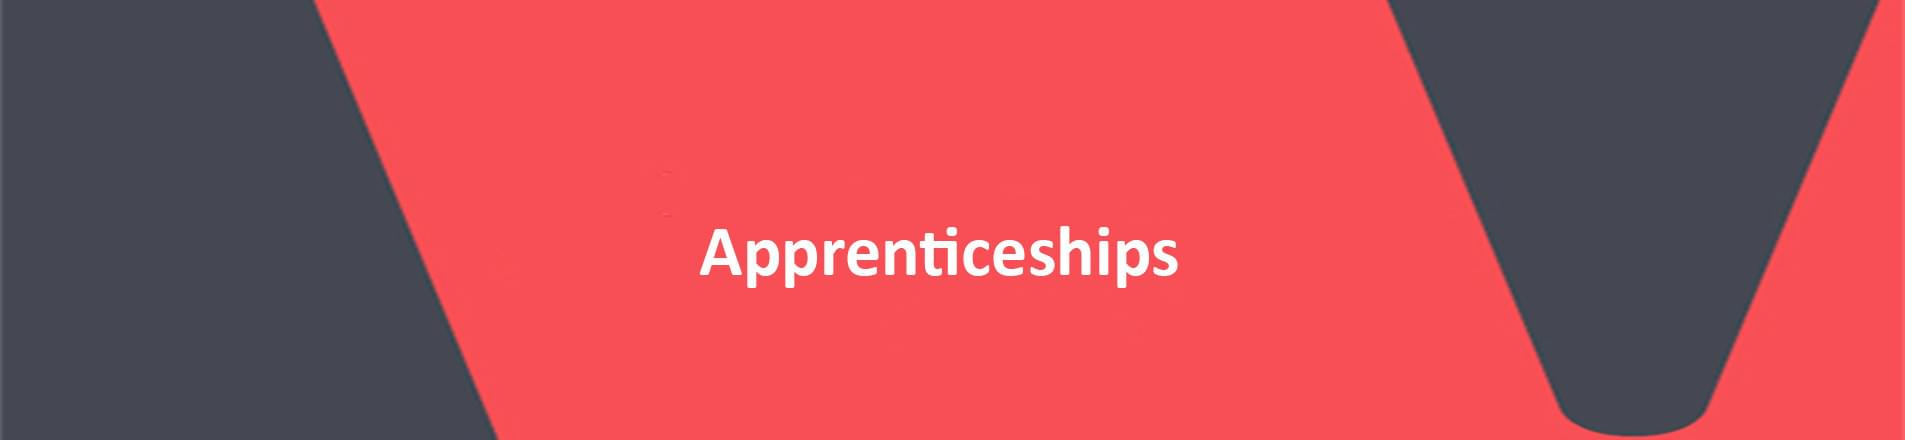 The word 'Apprenticeships' on red VERCIDA background